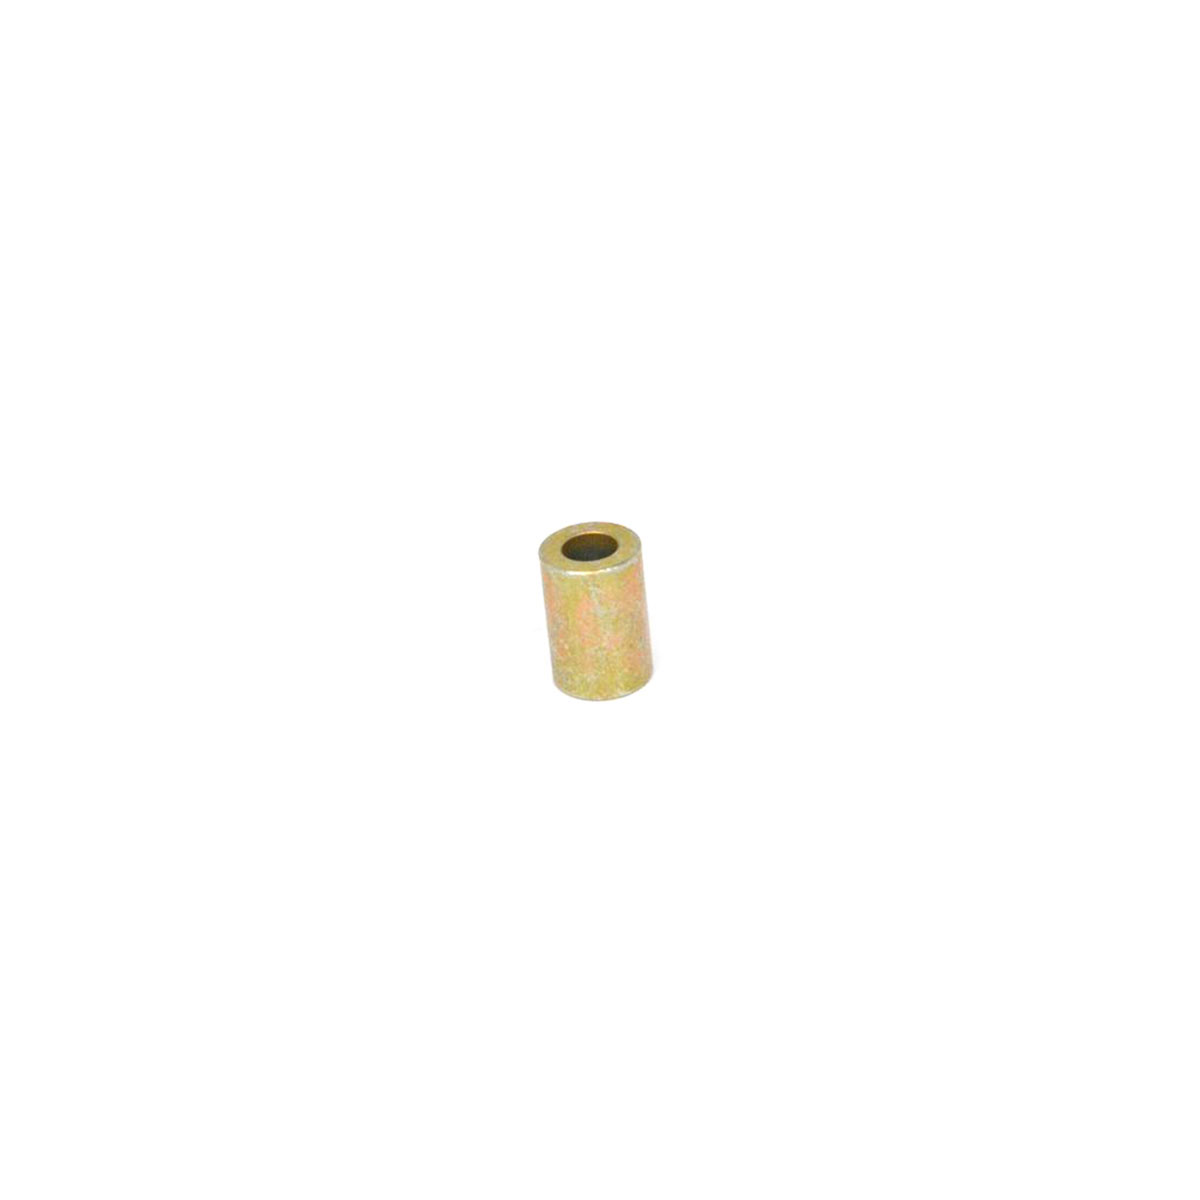 Scag Deck Lift Spring Spacer 43572